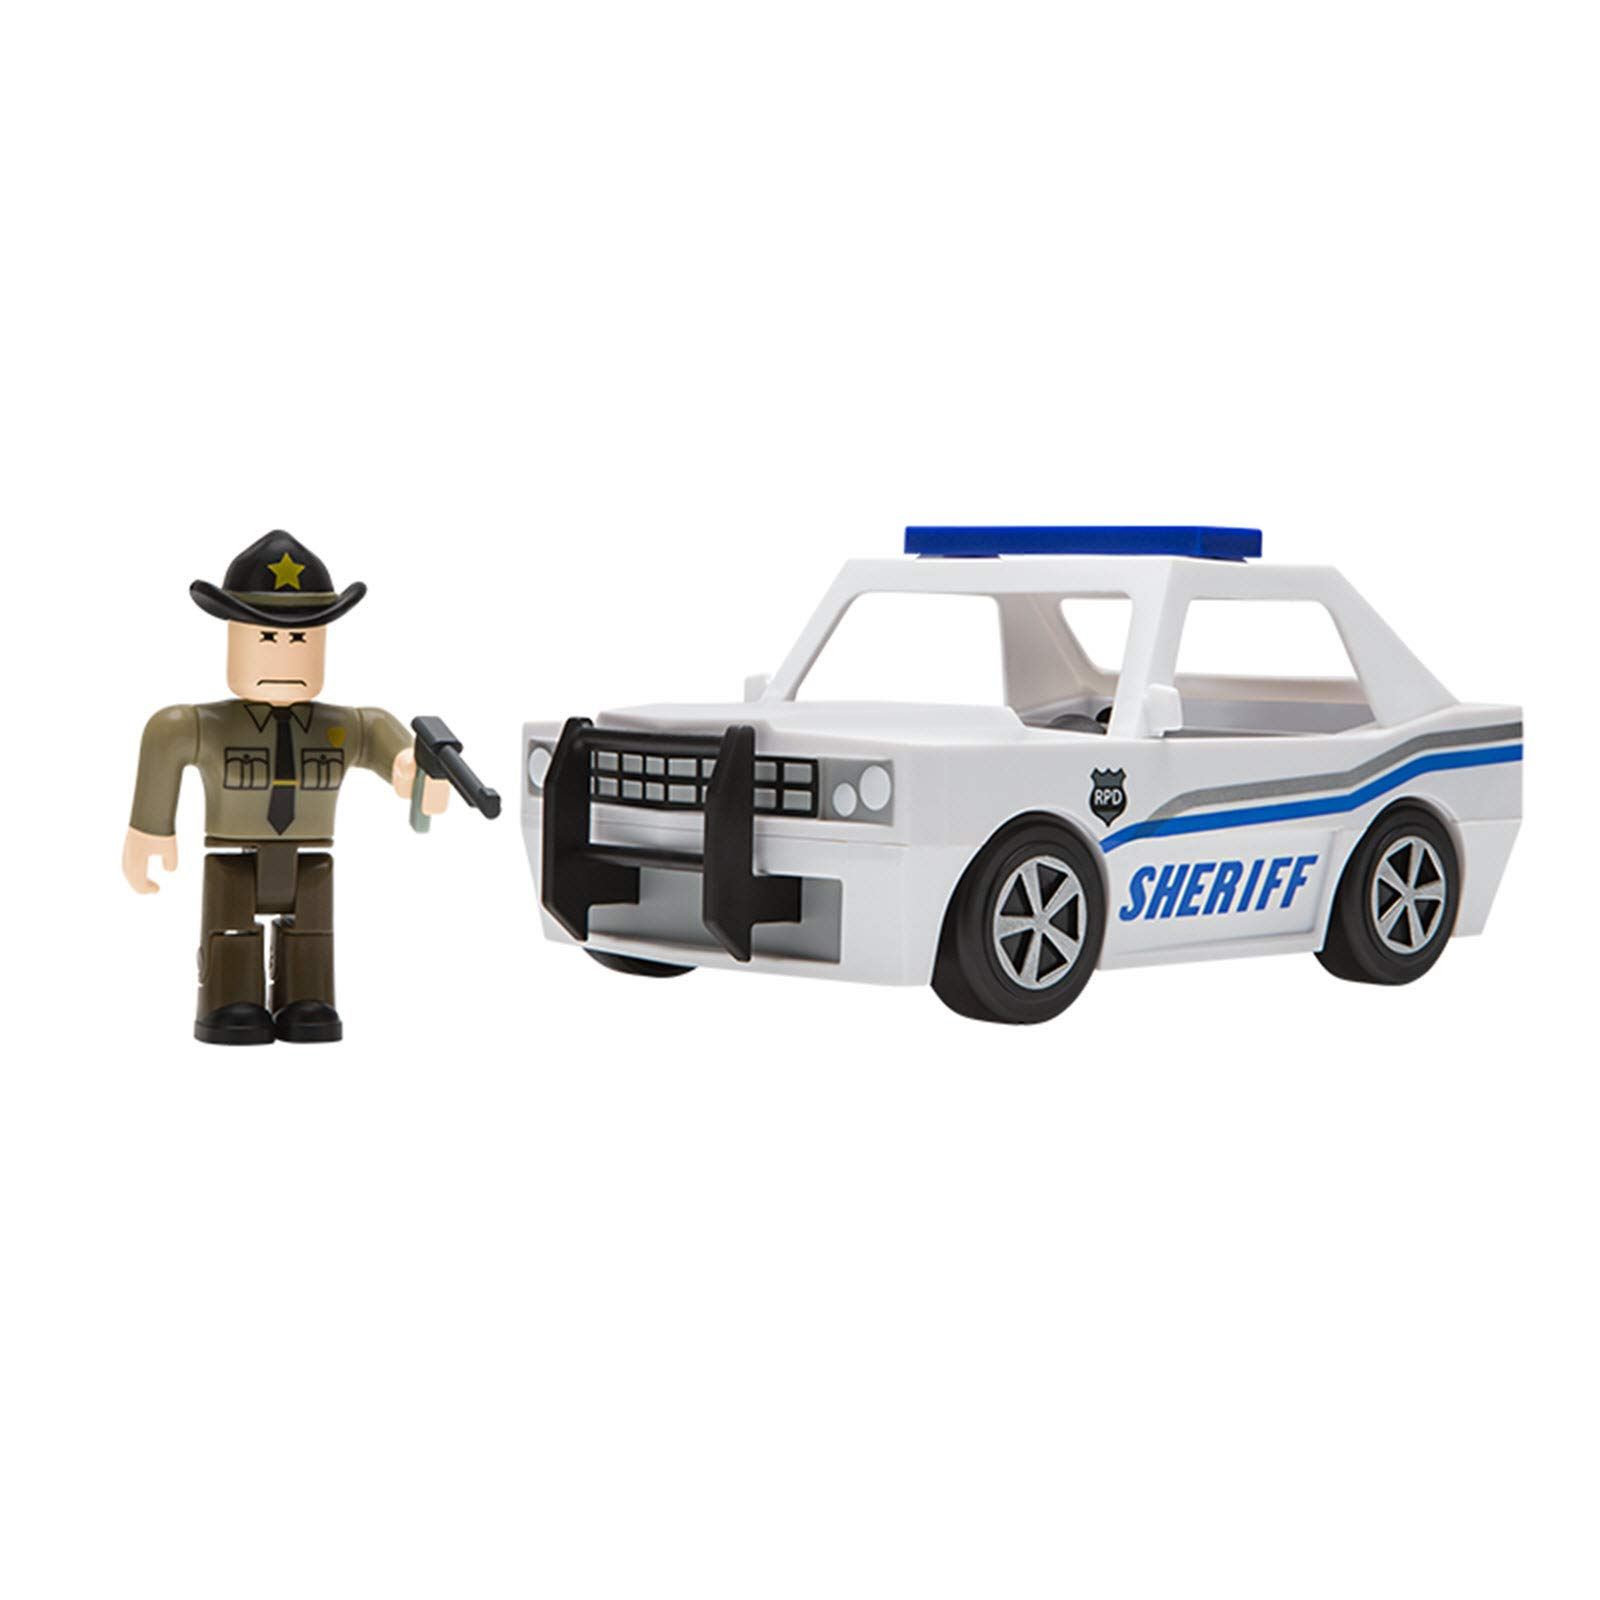 Roblox Neighborhood of Robloxia Patrol Car by Roblox